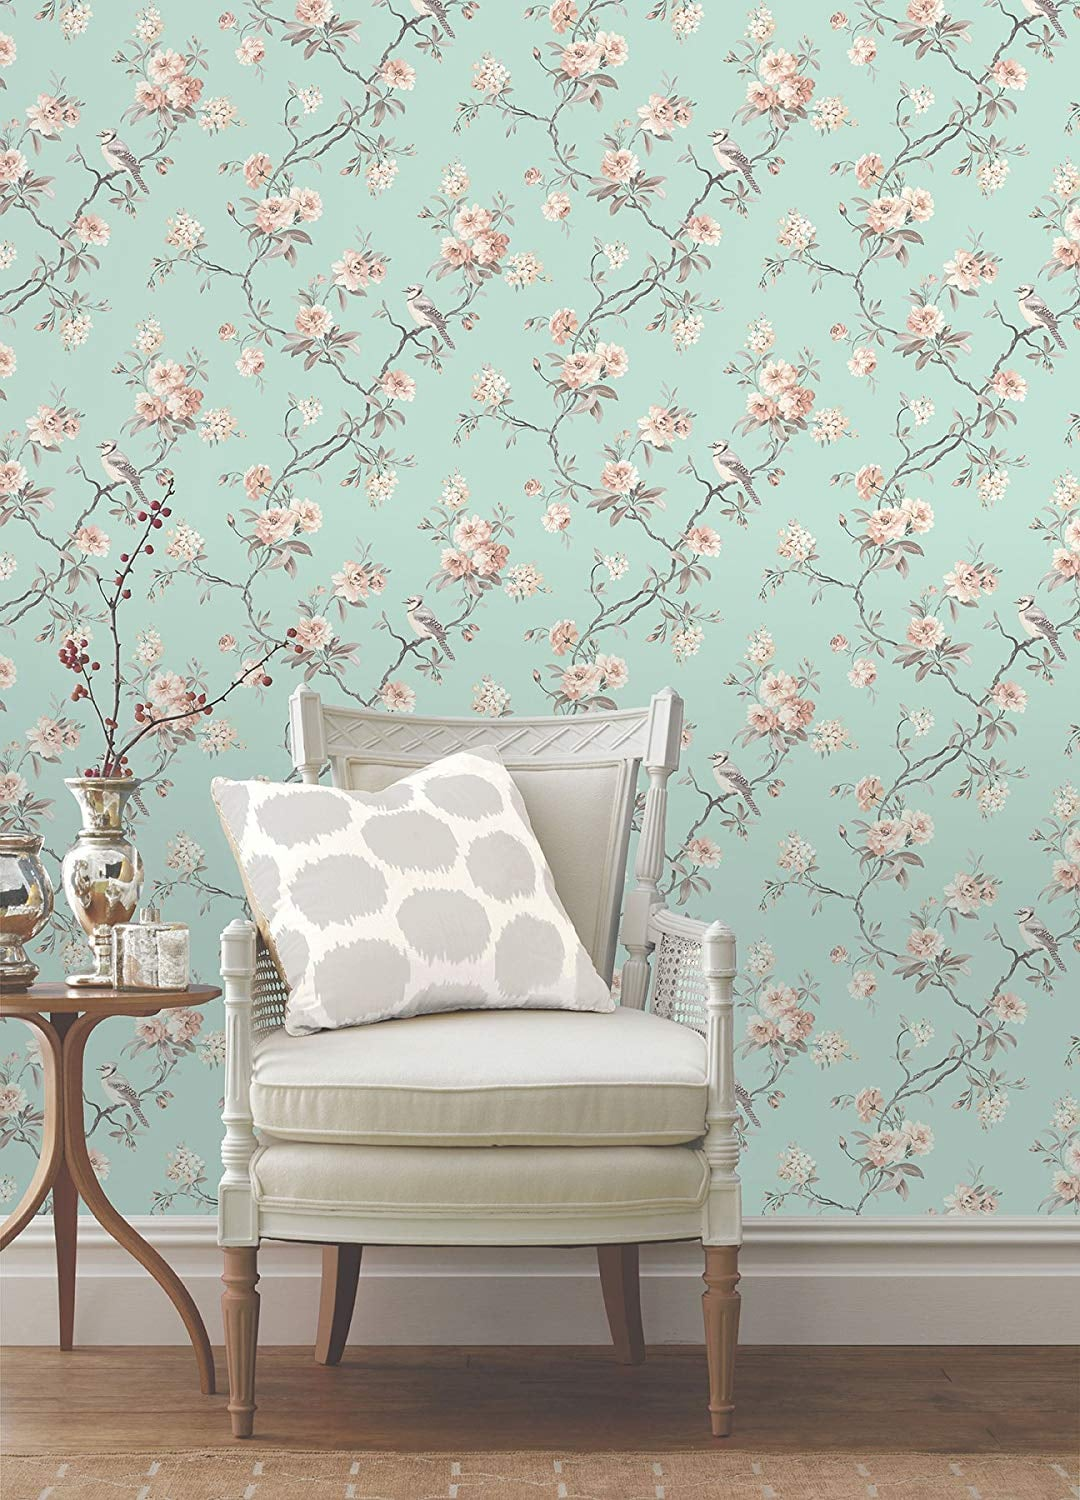 Fine Decor Chinoiserie Seafoam Floral Wallpaper 15 Gorgeous But